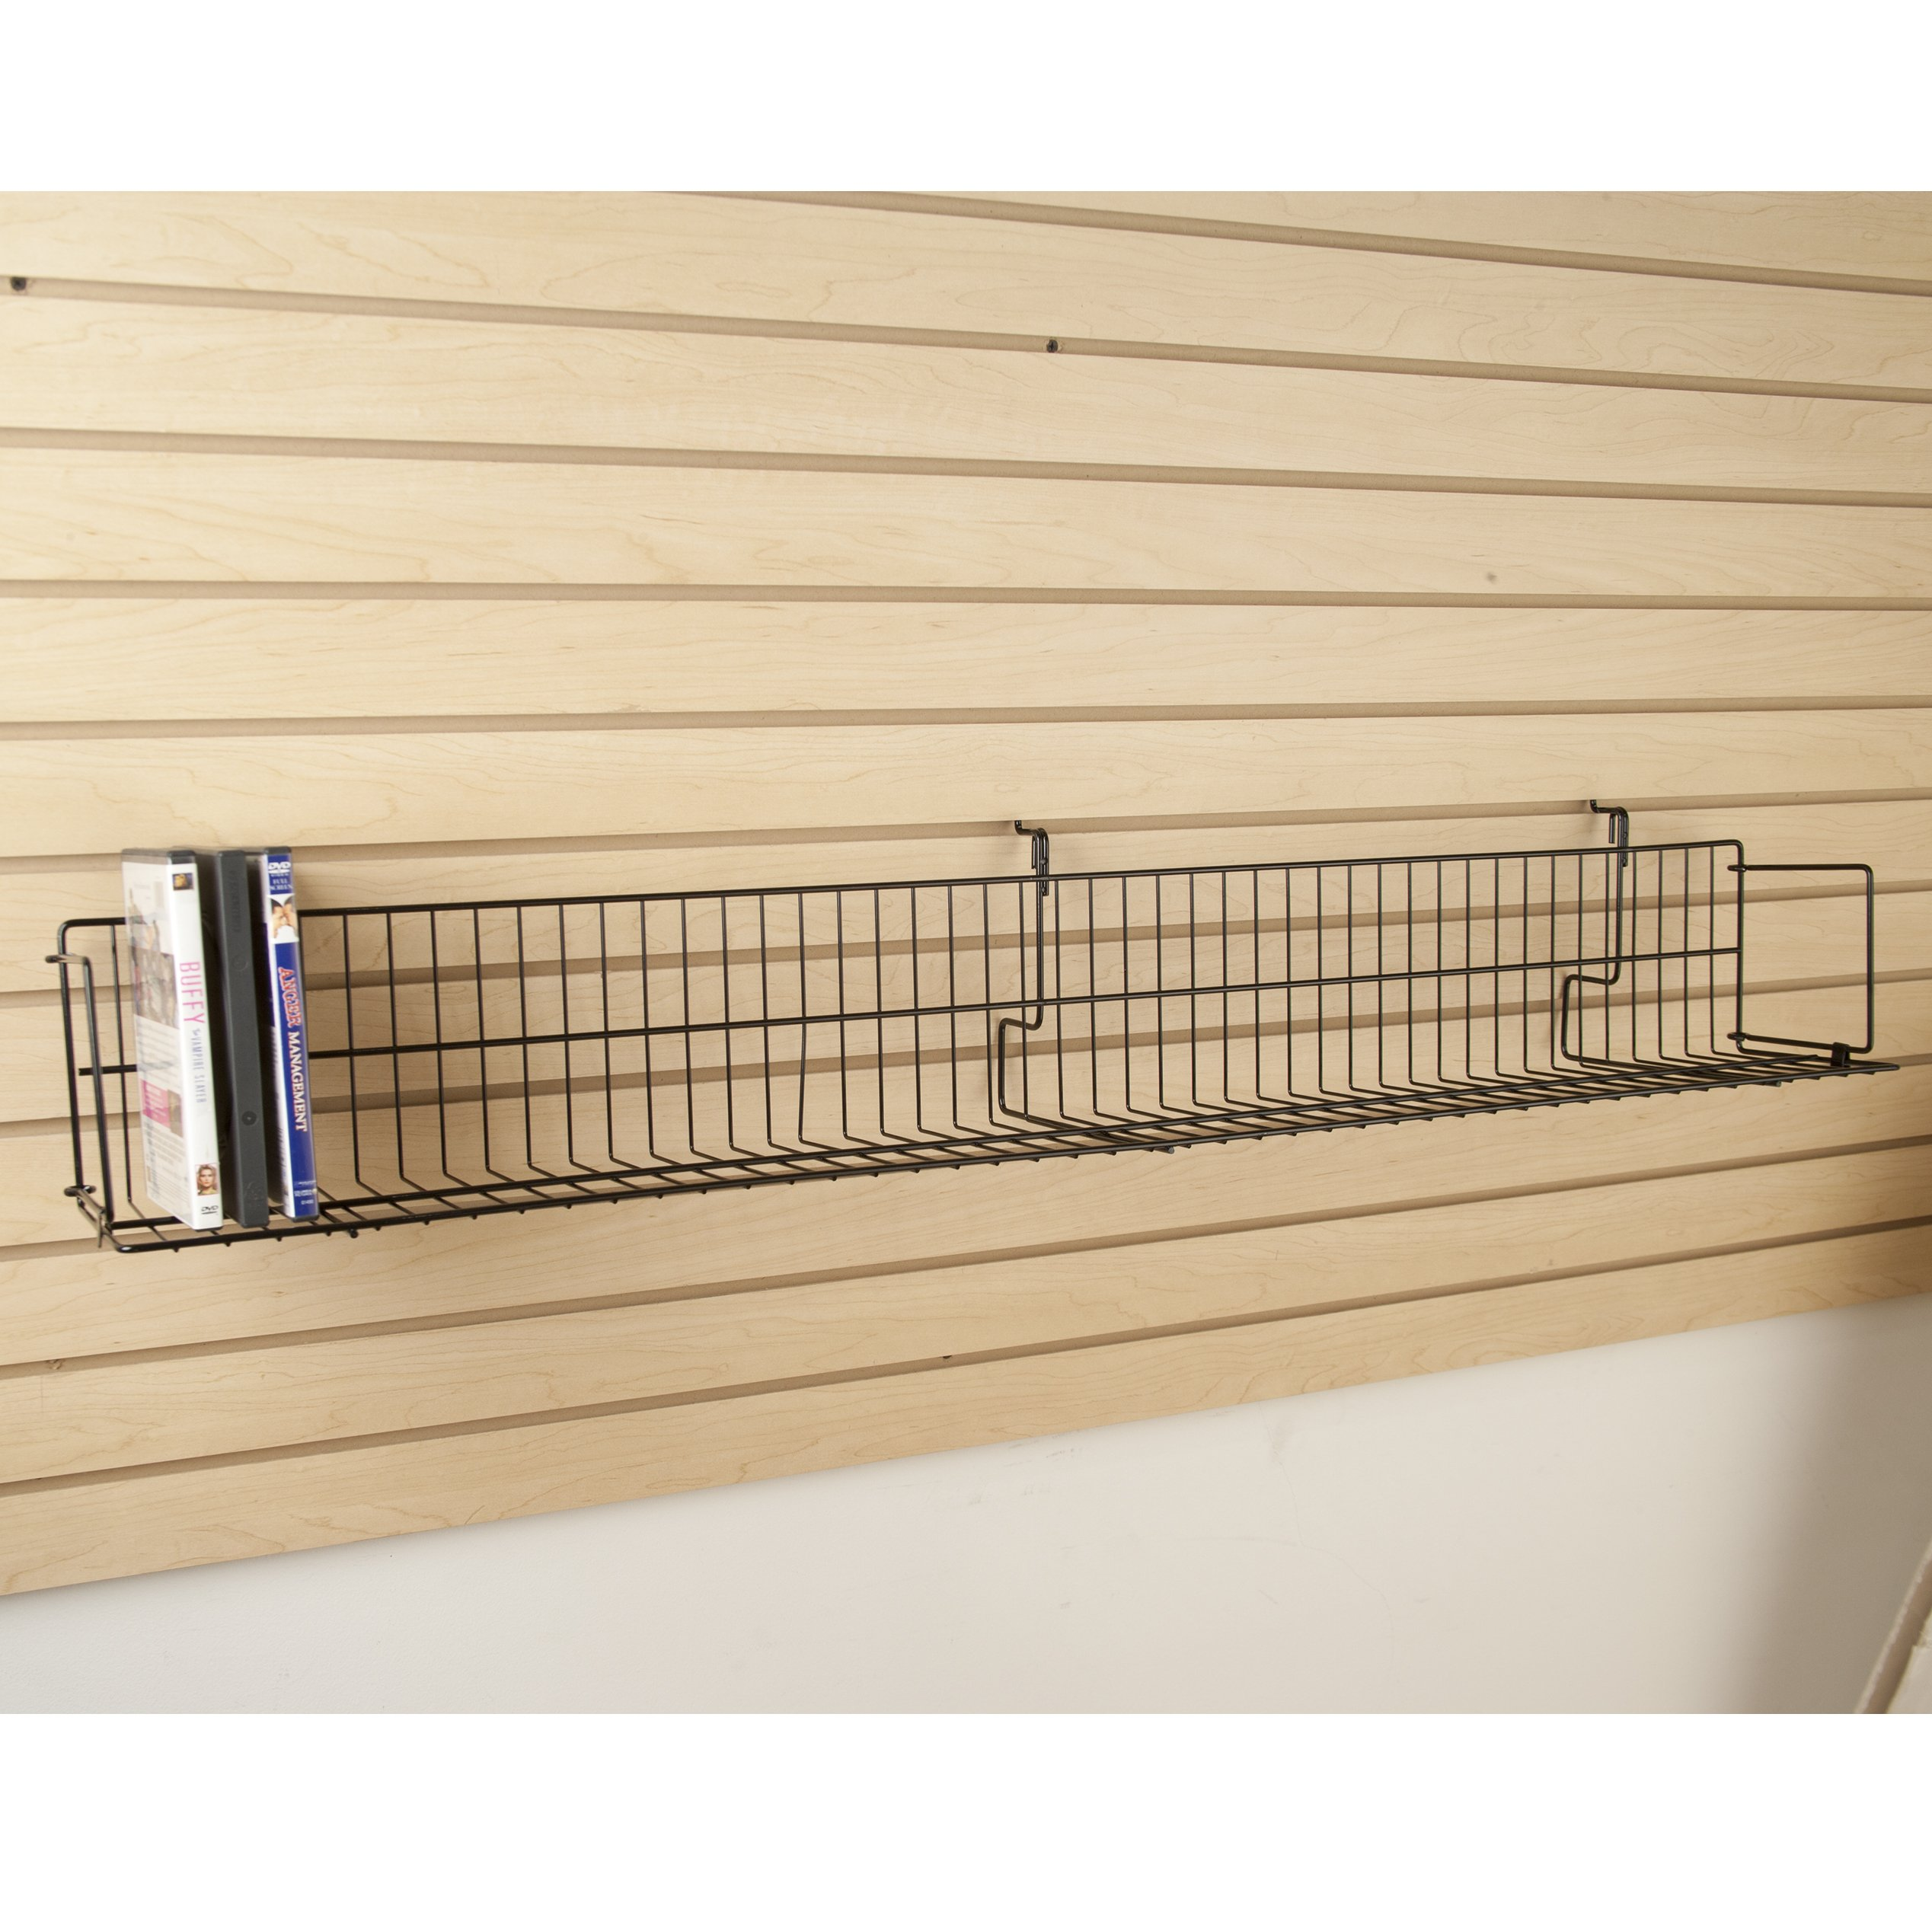 ExecuSystems 48'' Wide Video Shelf for Slatwall, Gridwall or Pegboard - Box of 6 by Unknown (Image #2)